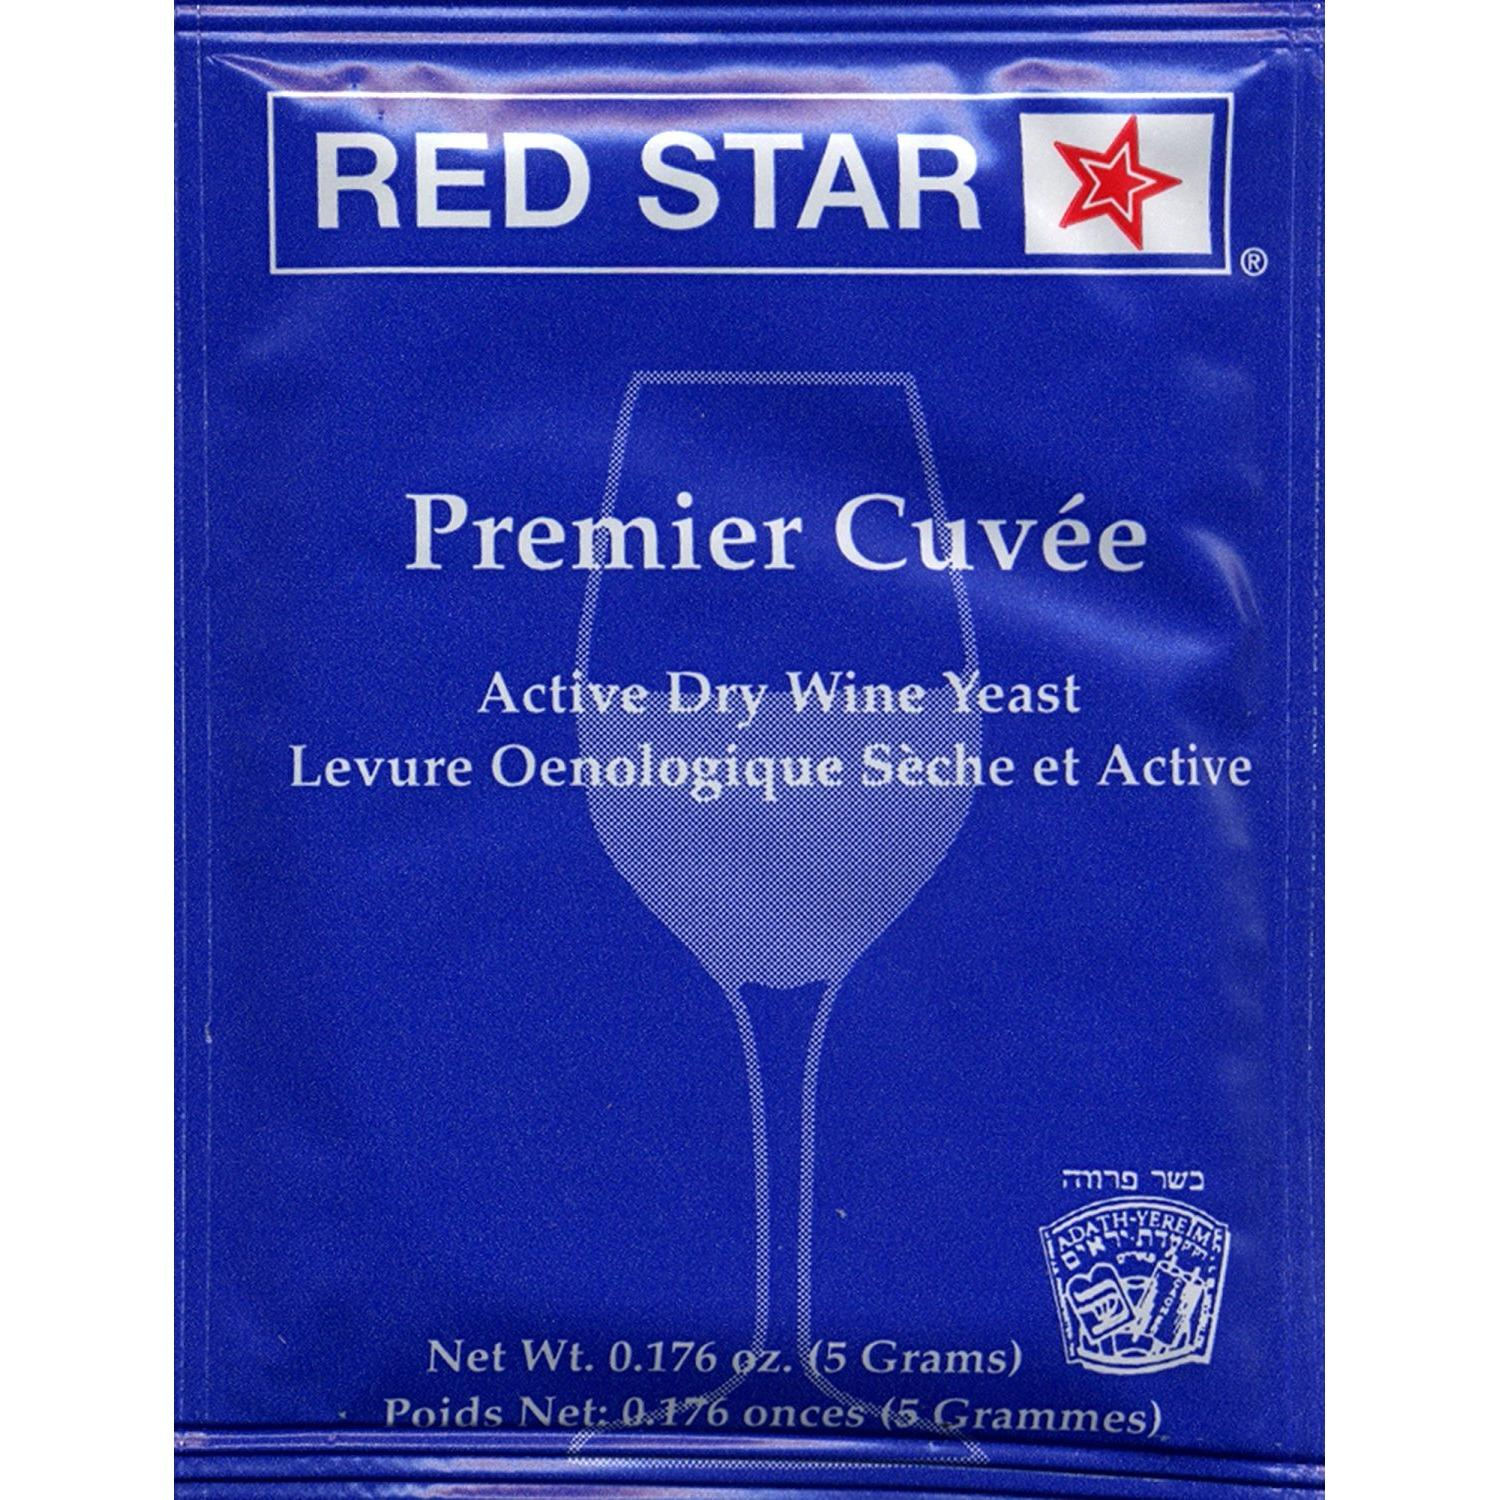 Red Star Premier Cuvee Wine Yeast, 5g - 5-Pack By Elite Collection.